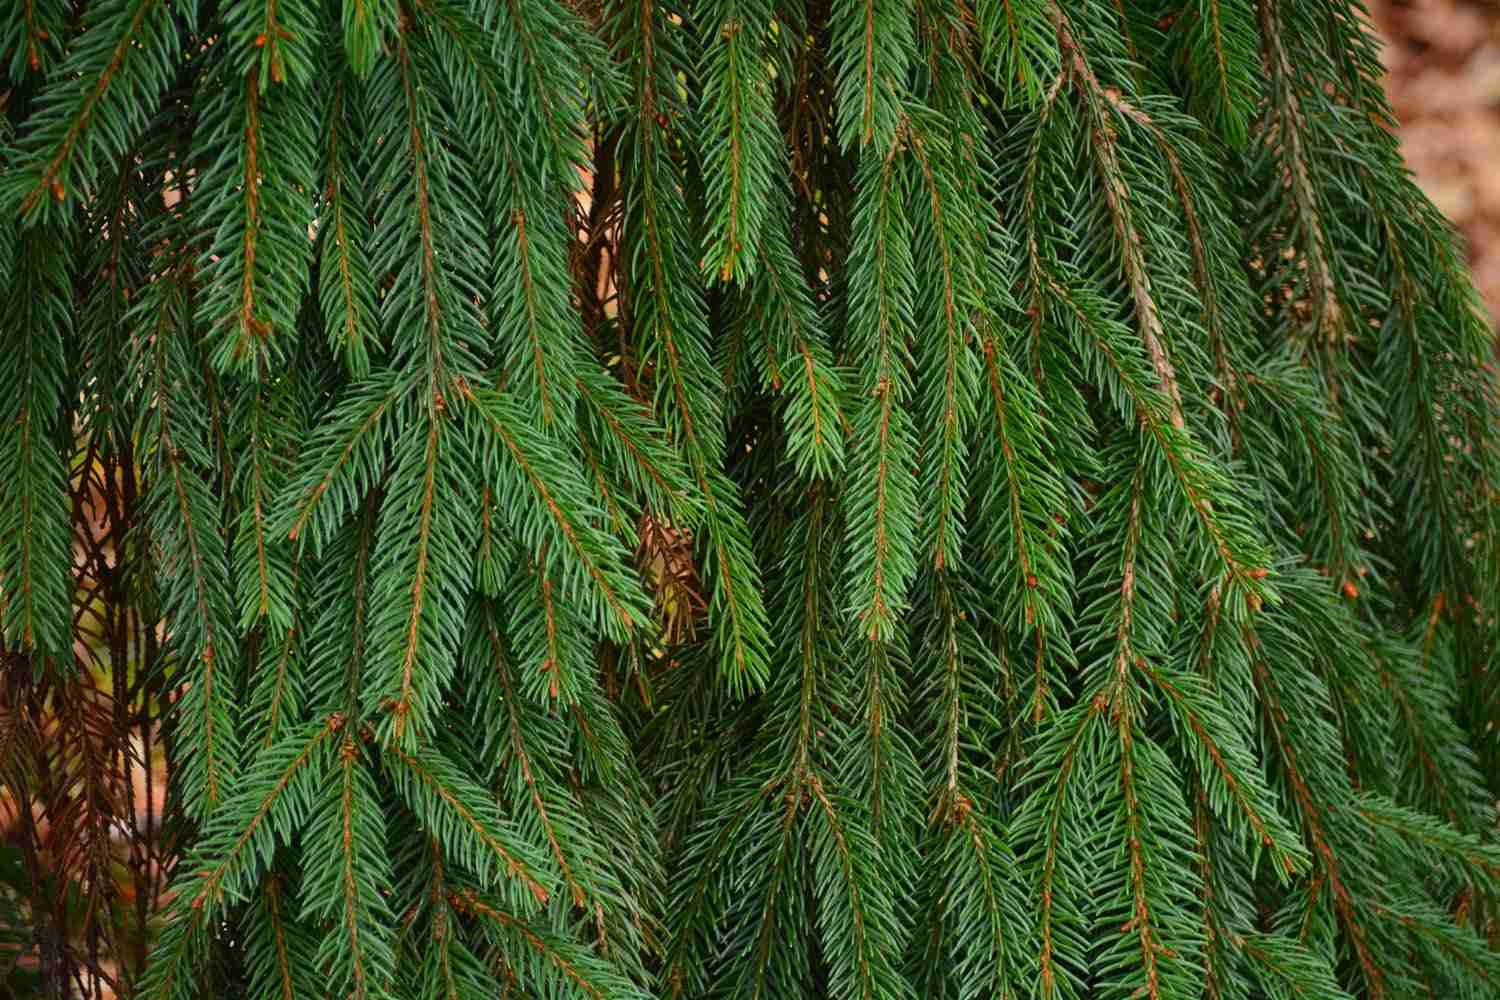 13 Most Common North American Pine Species